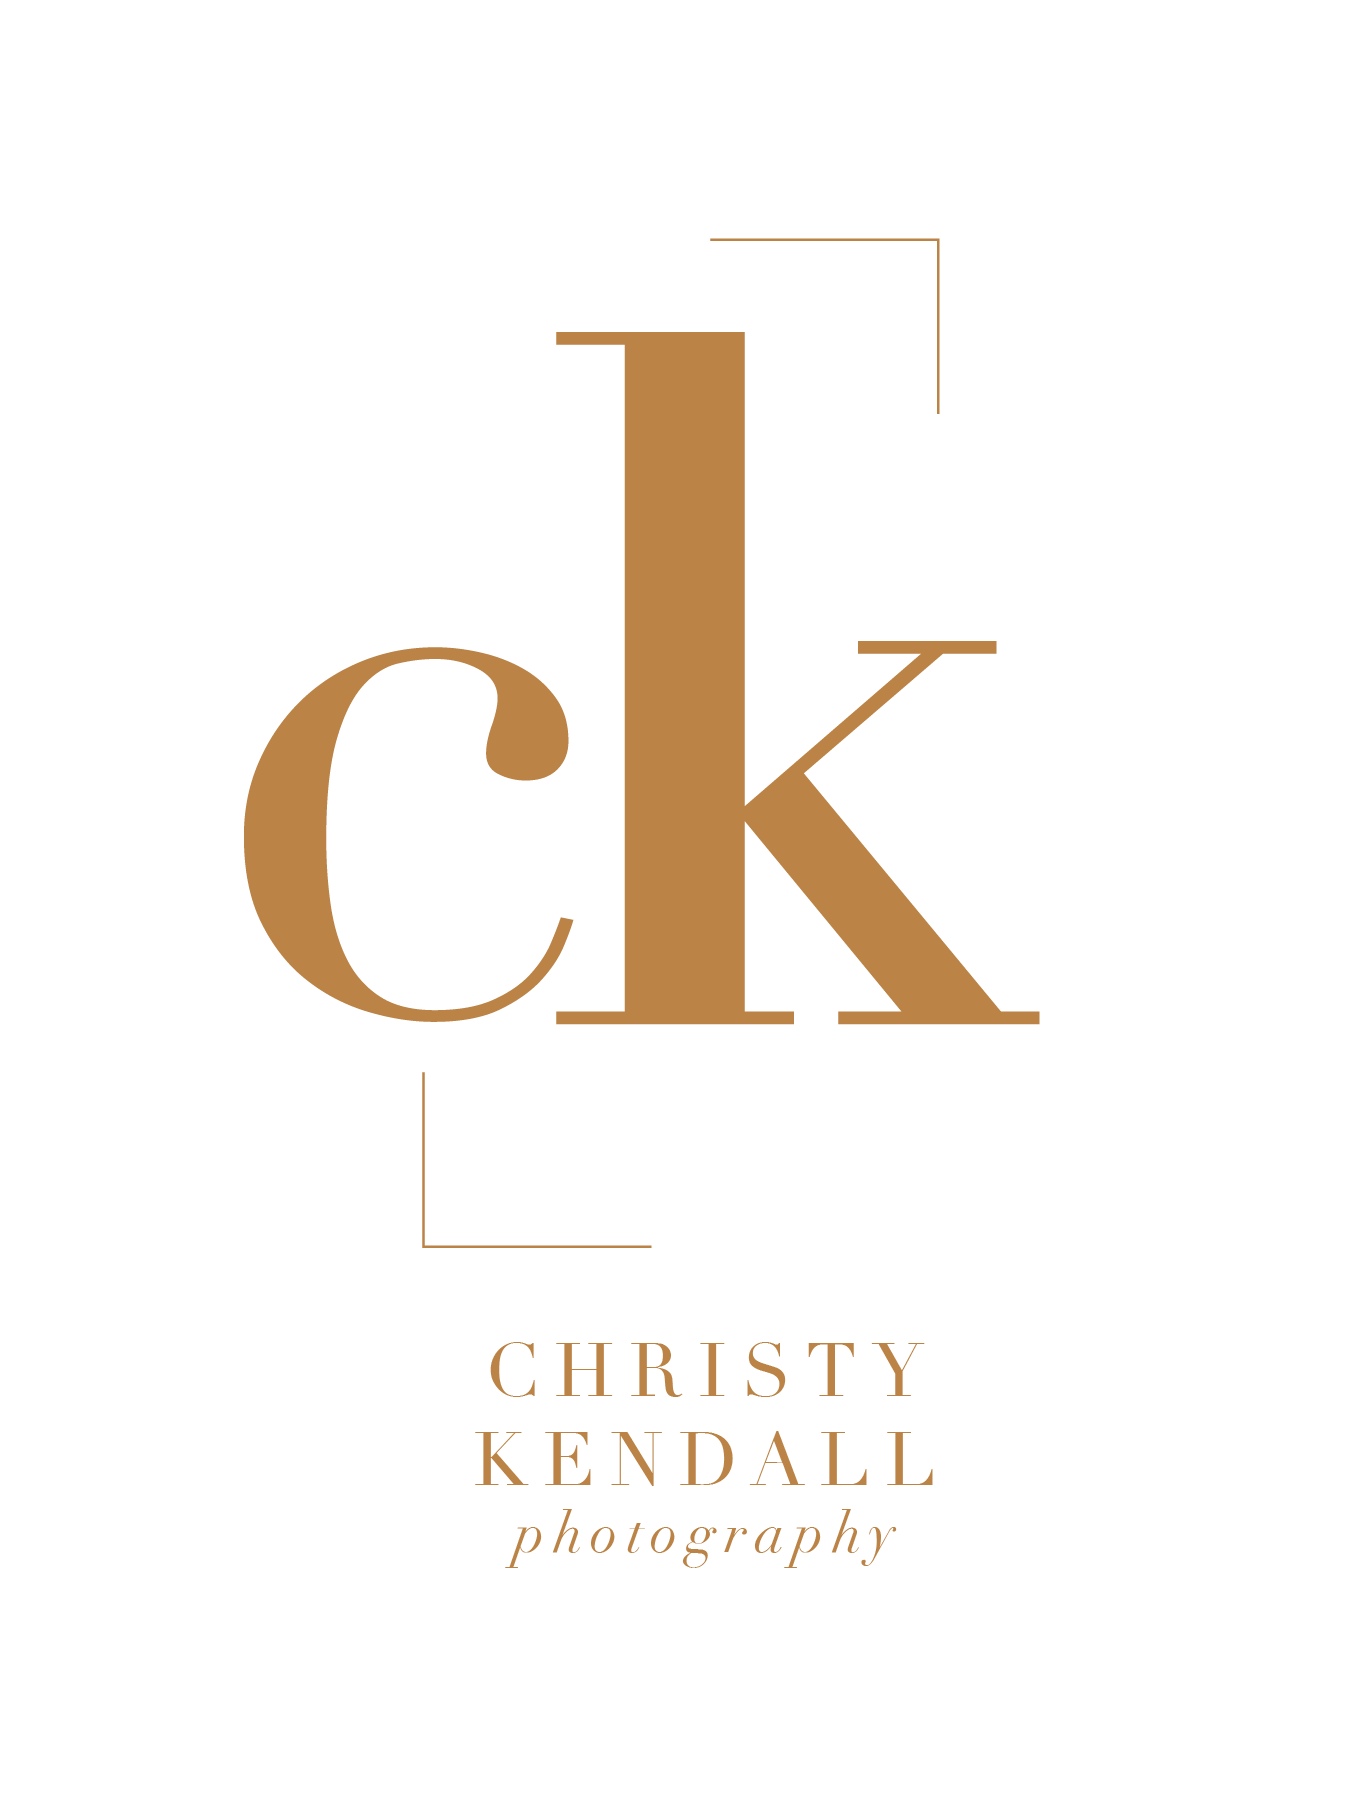 Christy Kendall Photography